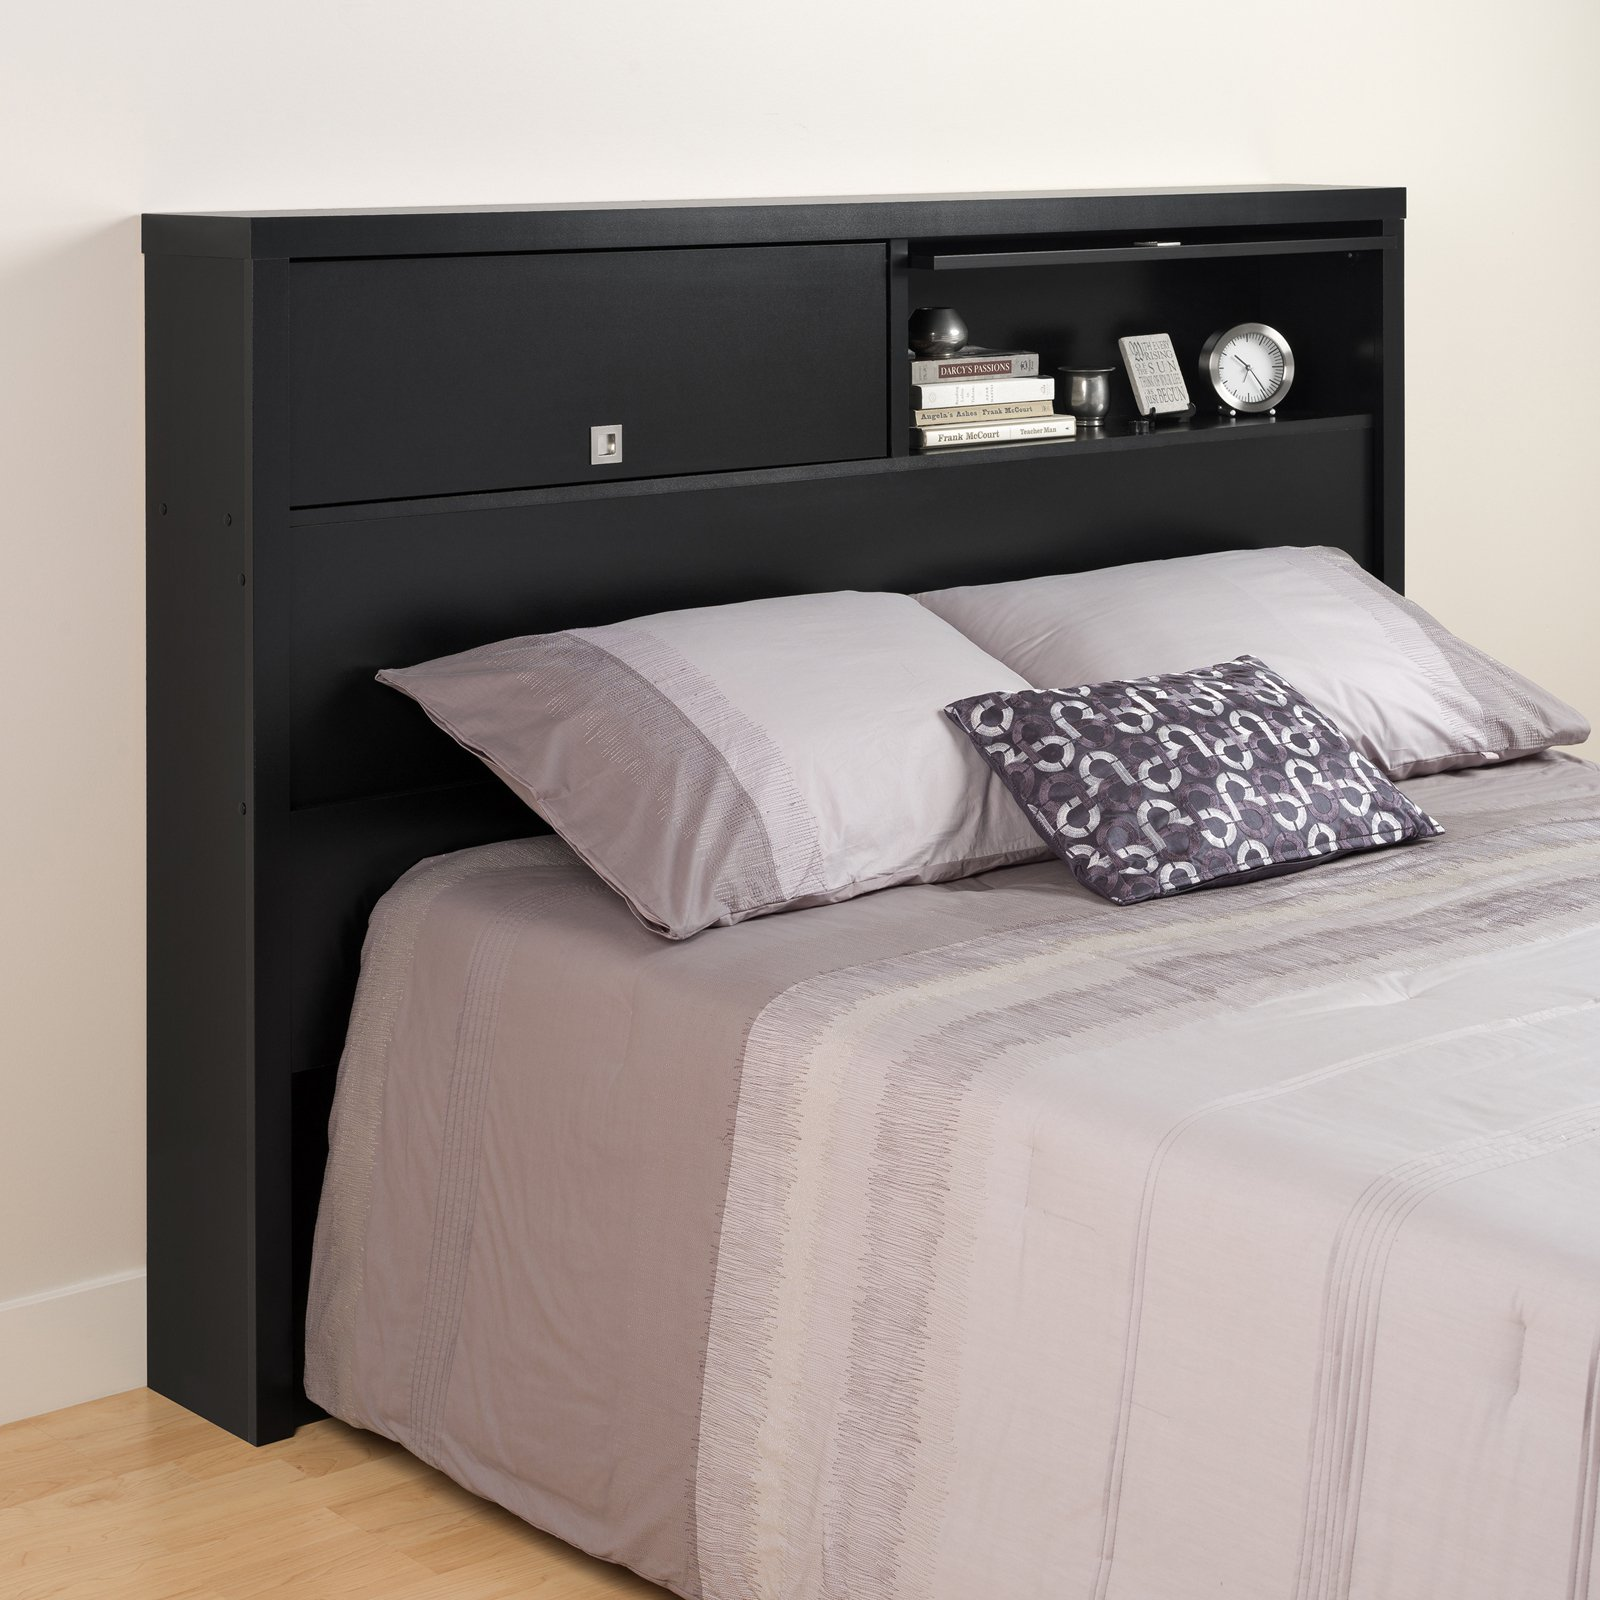 Black Series 9 Designer Full/Queen Headboard, 2-Door